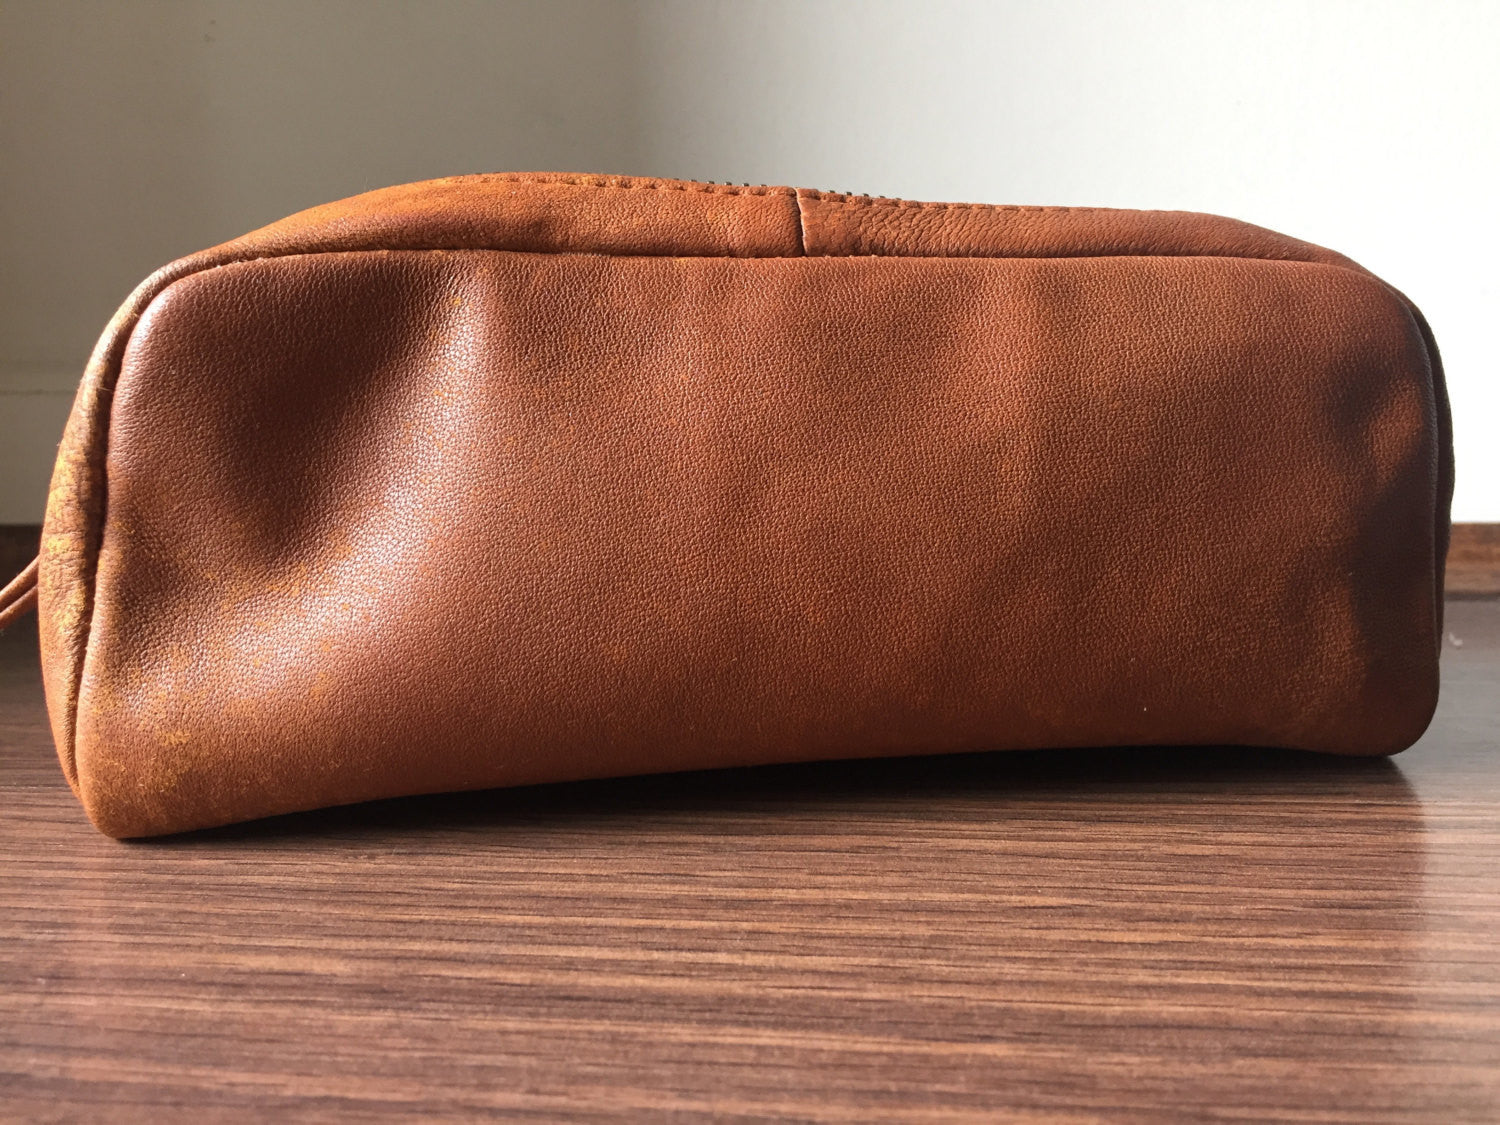 The Brush - Lined leather brush bag, cosmetic or make up bag with lining